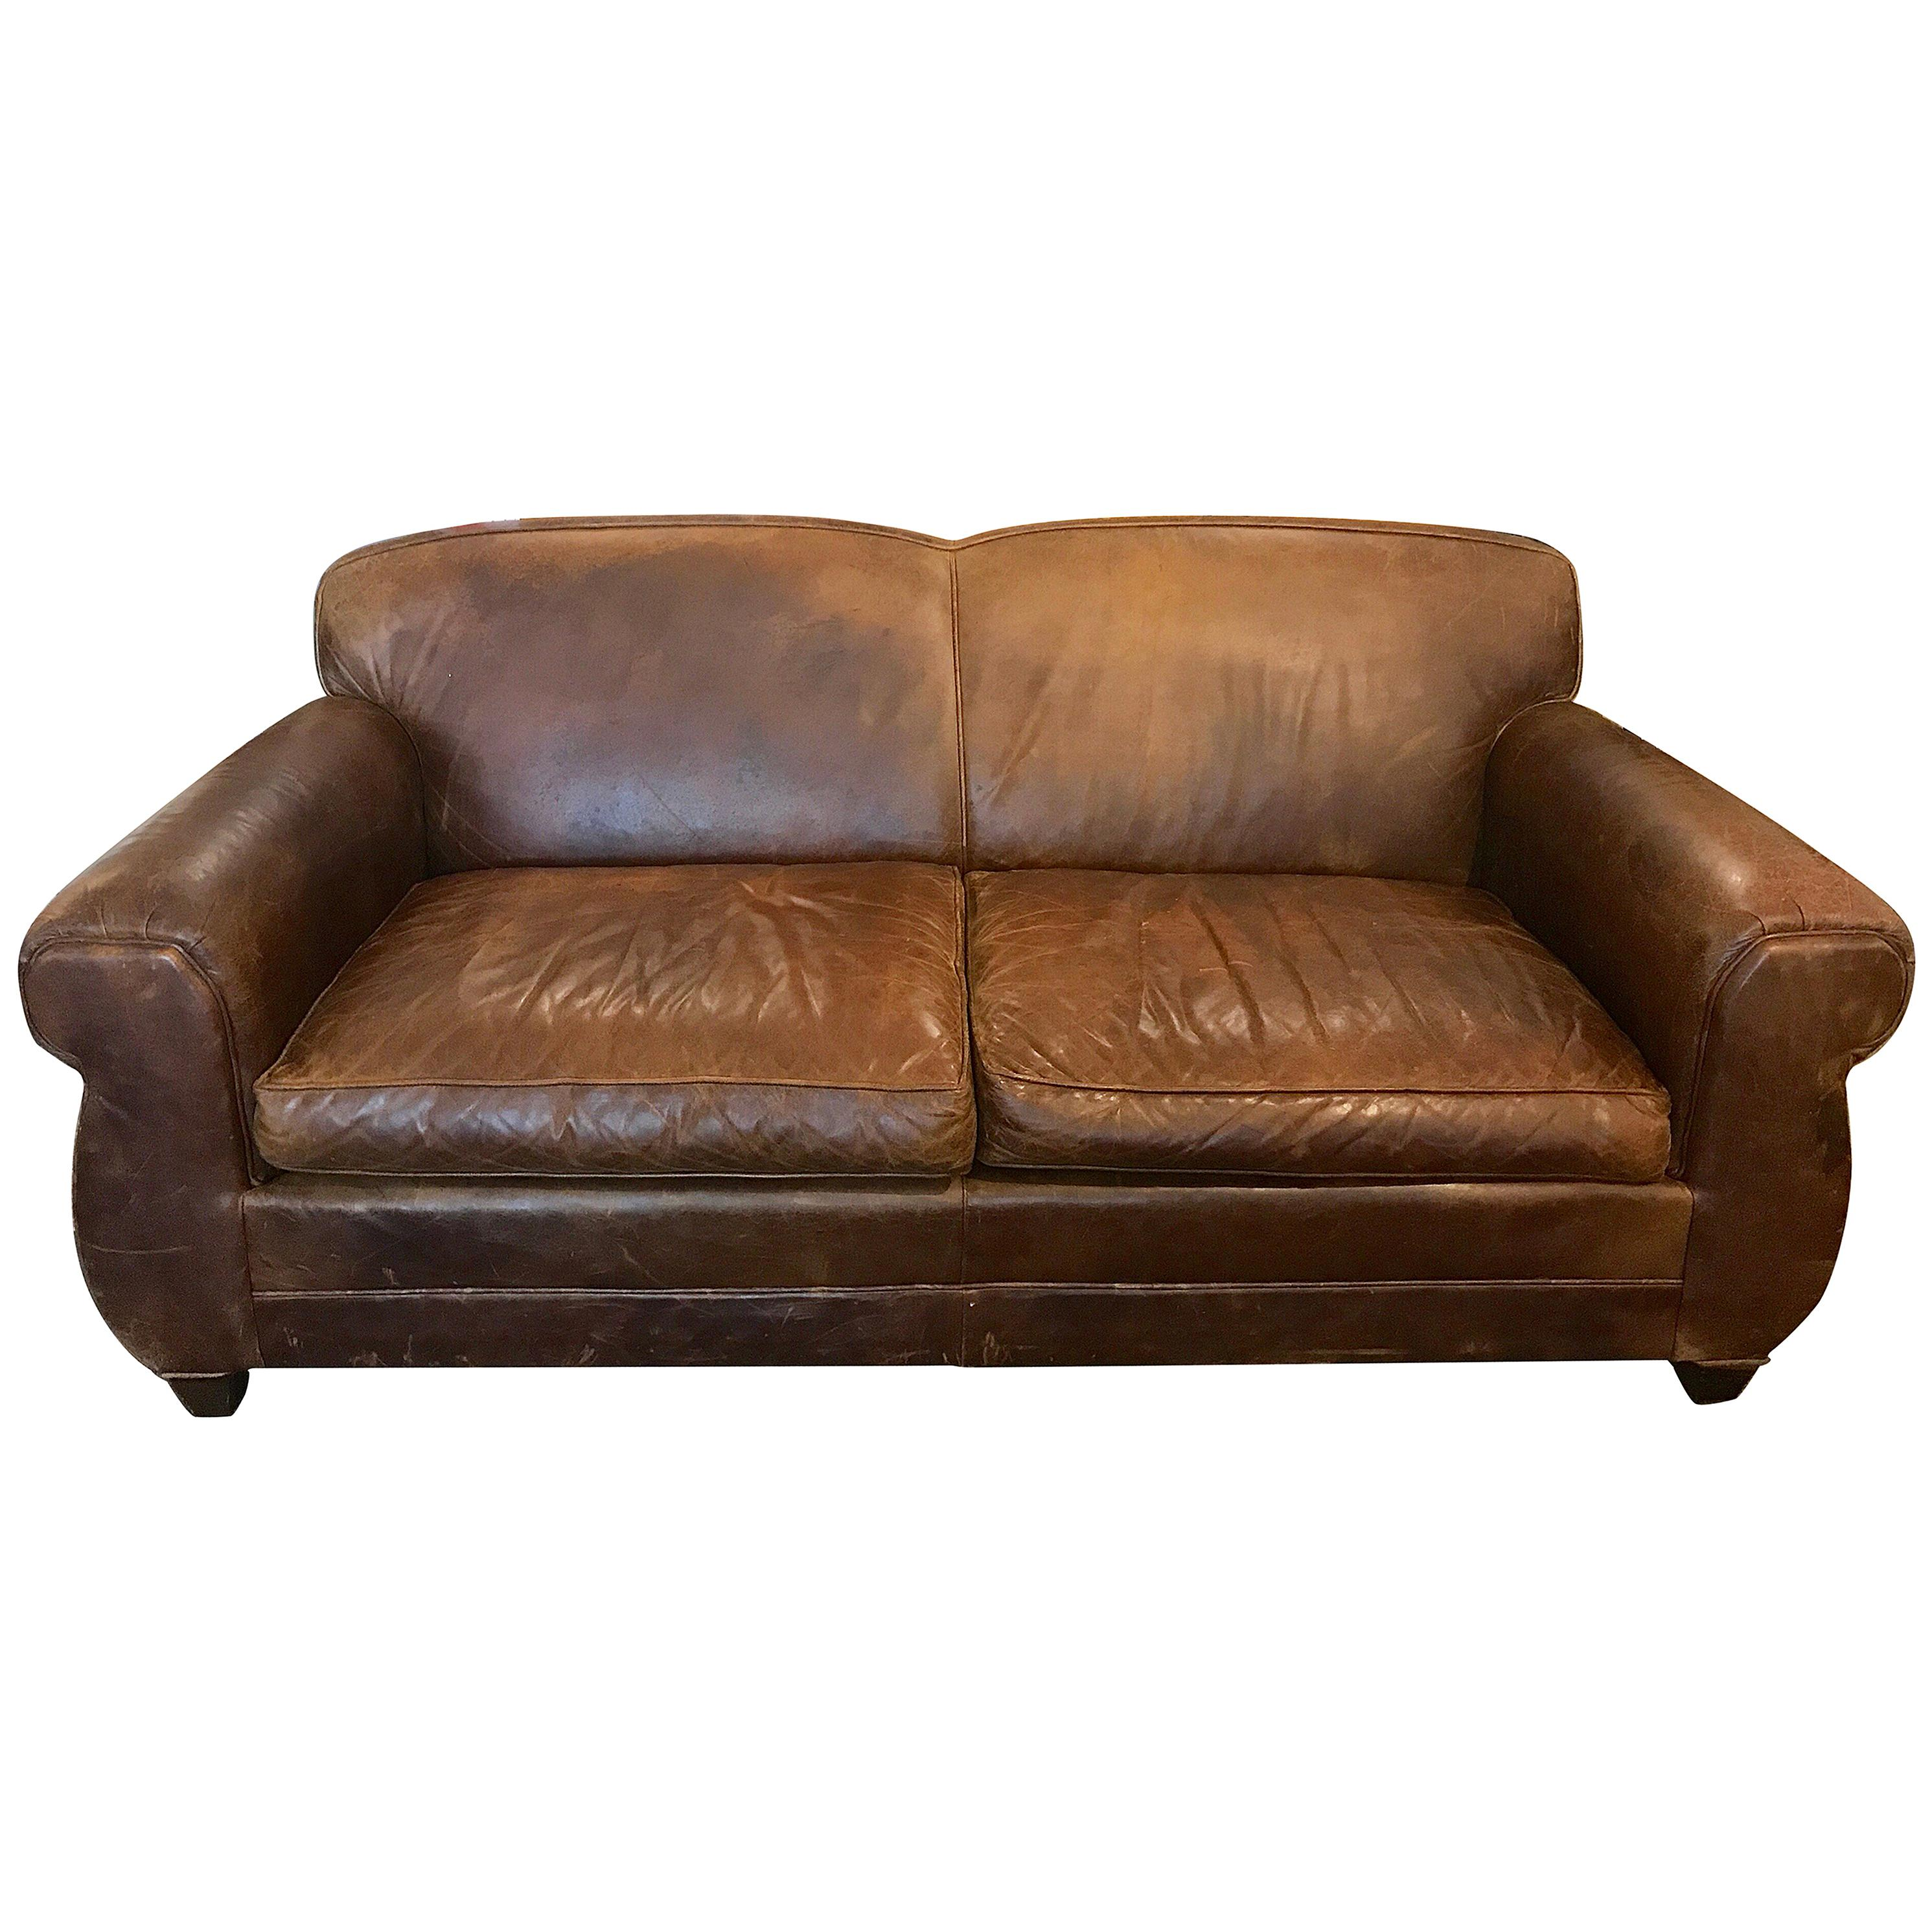 distressed leather sofas 29 for sale on 1stdibs rh 1stdibs com distressed leather sofas for sale distressed leather sofa recliner